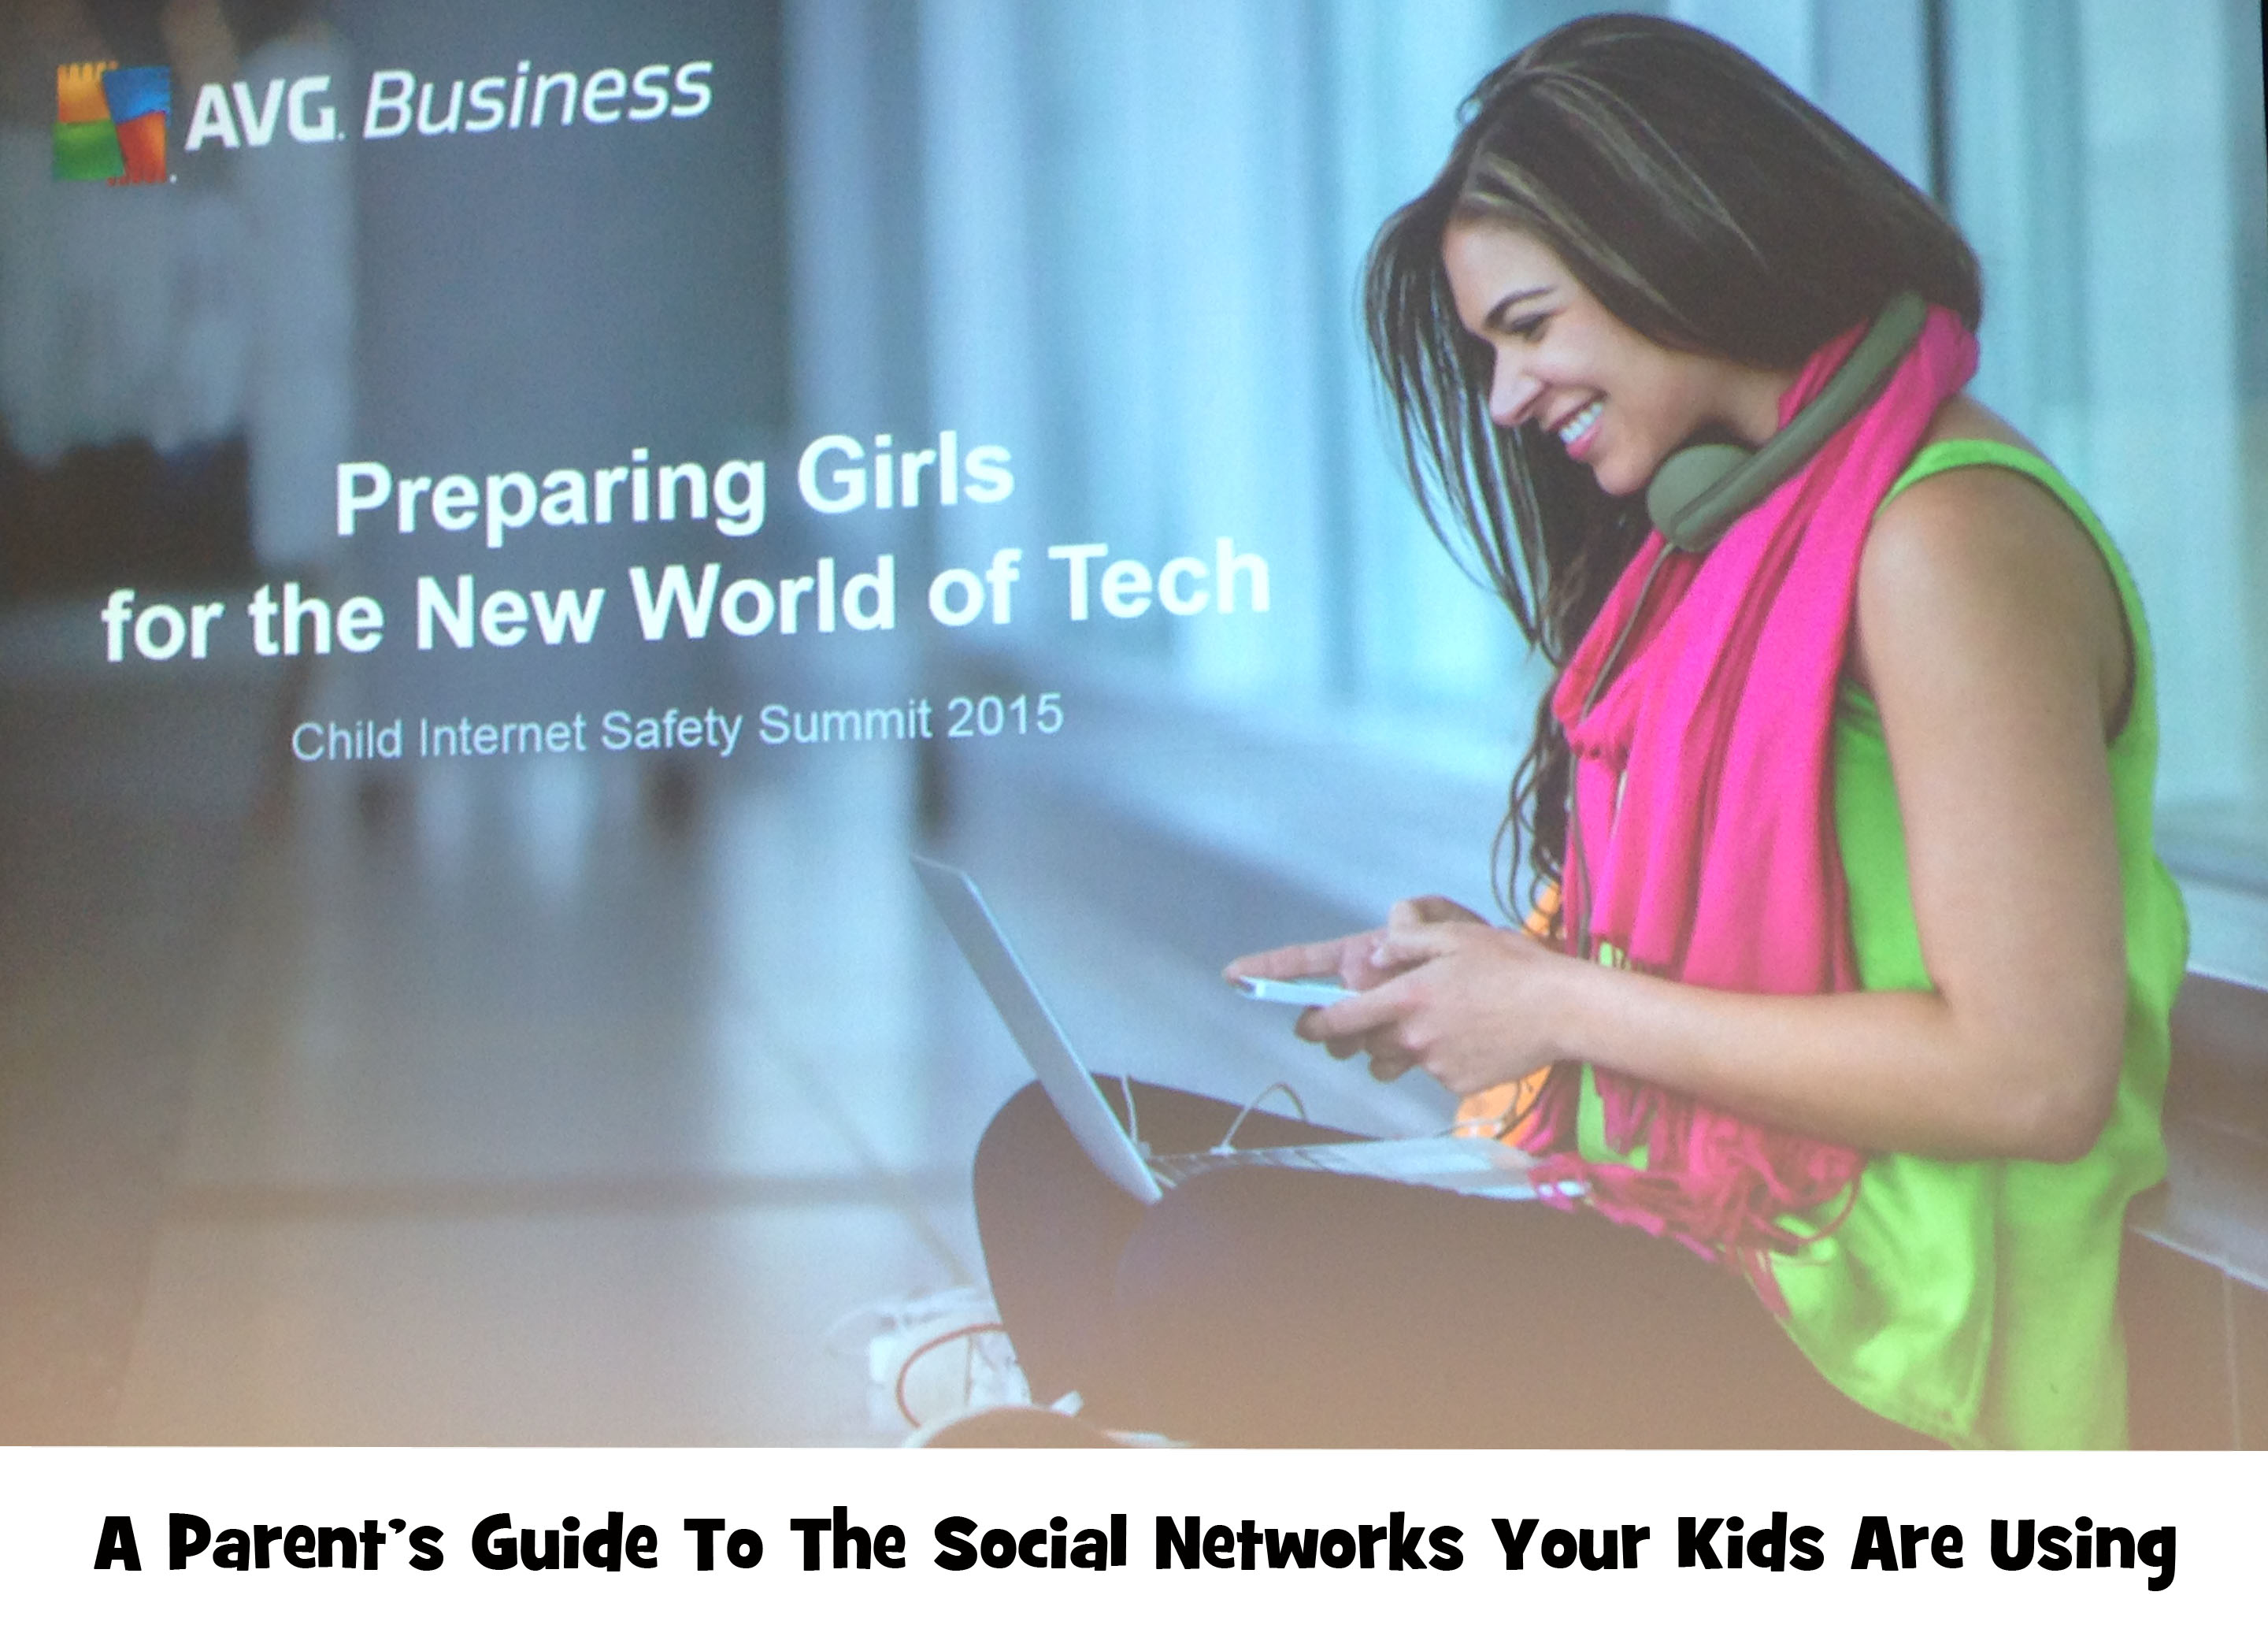 A Parent's Guide To The Social Networks Your Kids Are Using